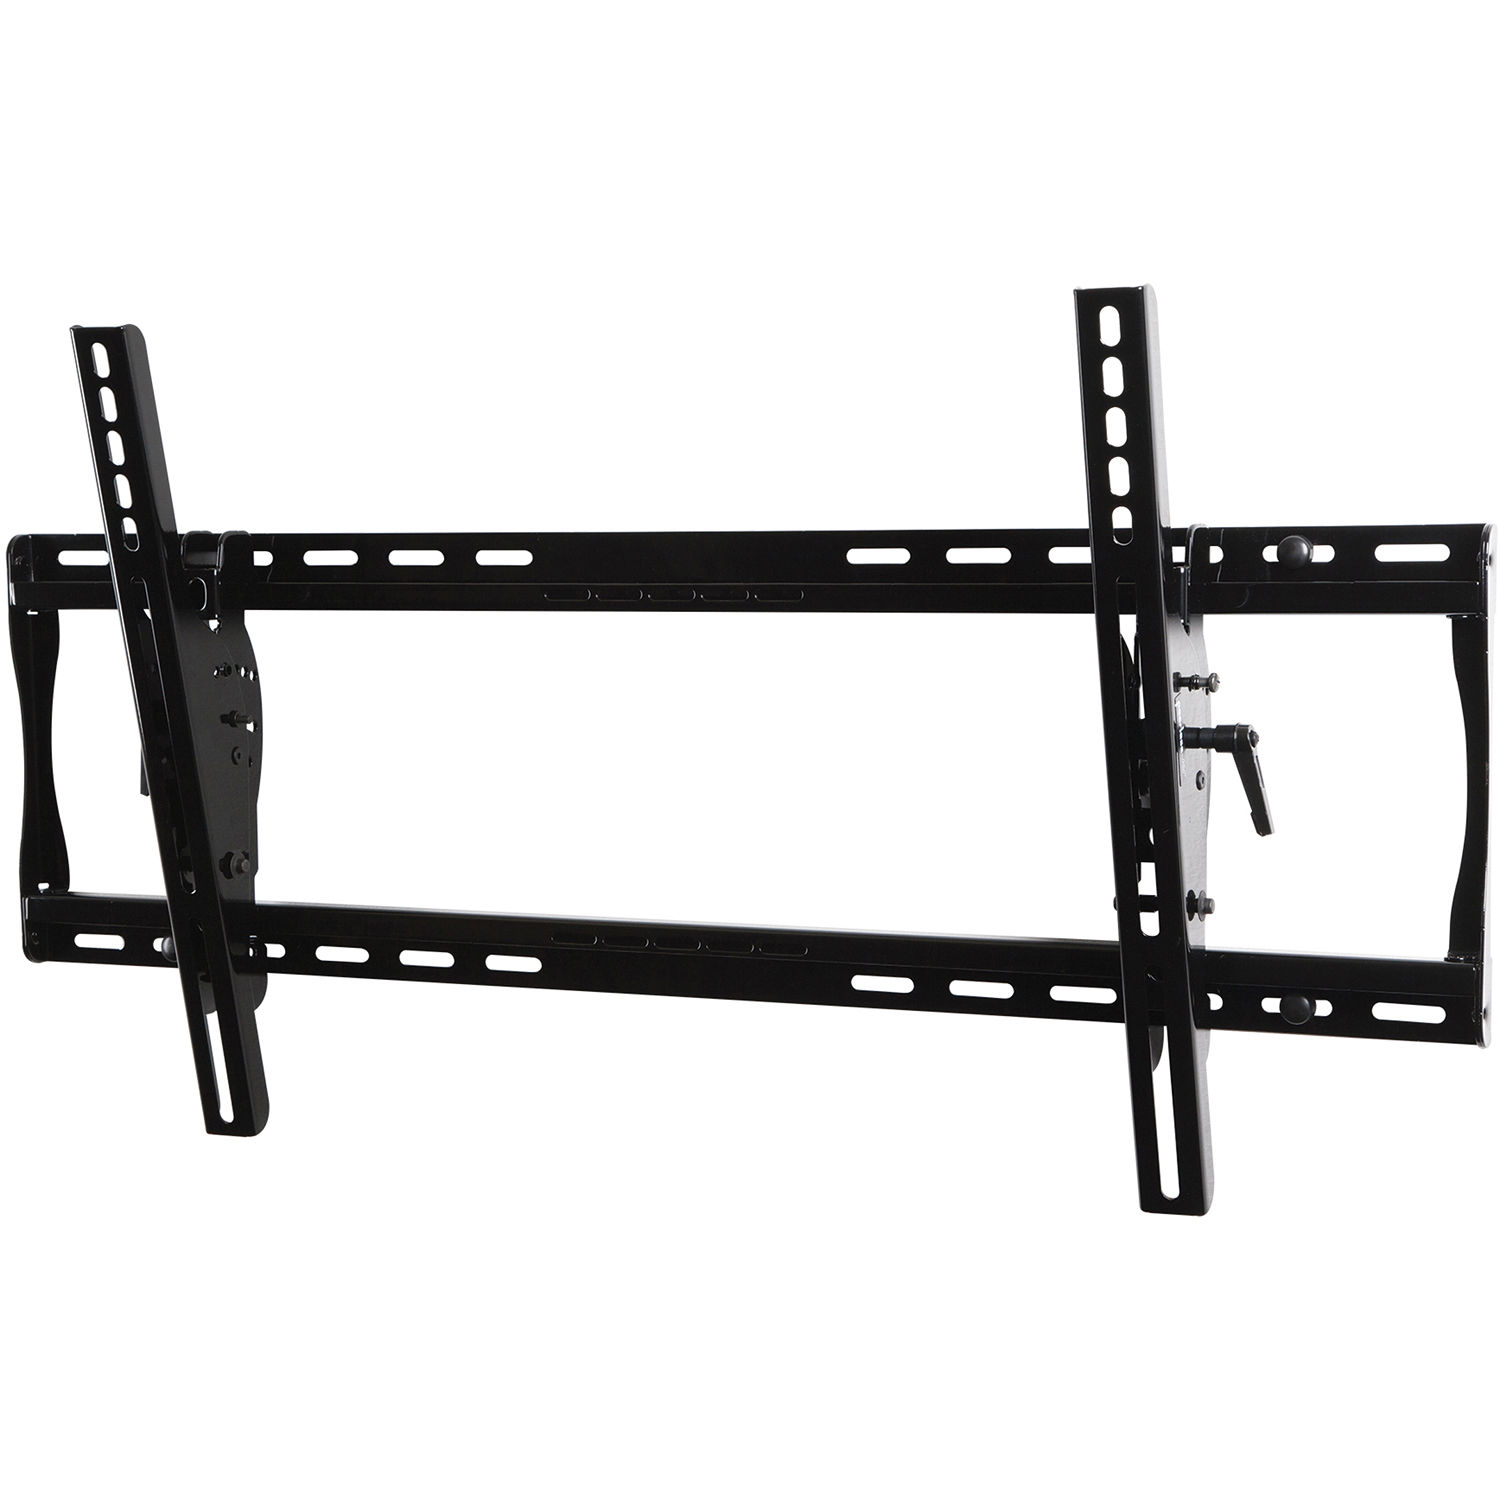 Best Wall Mount For 75 inch Samsung TV